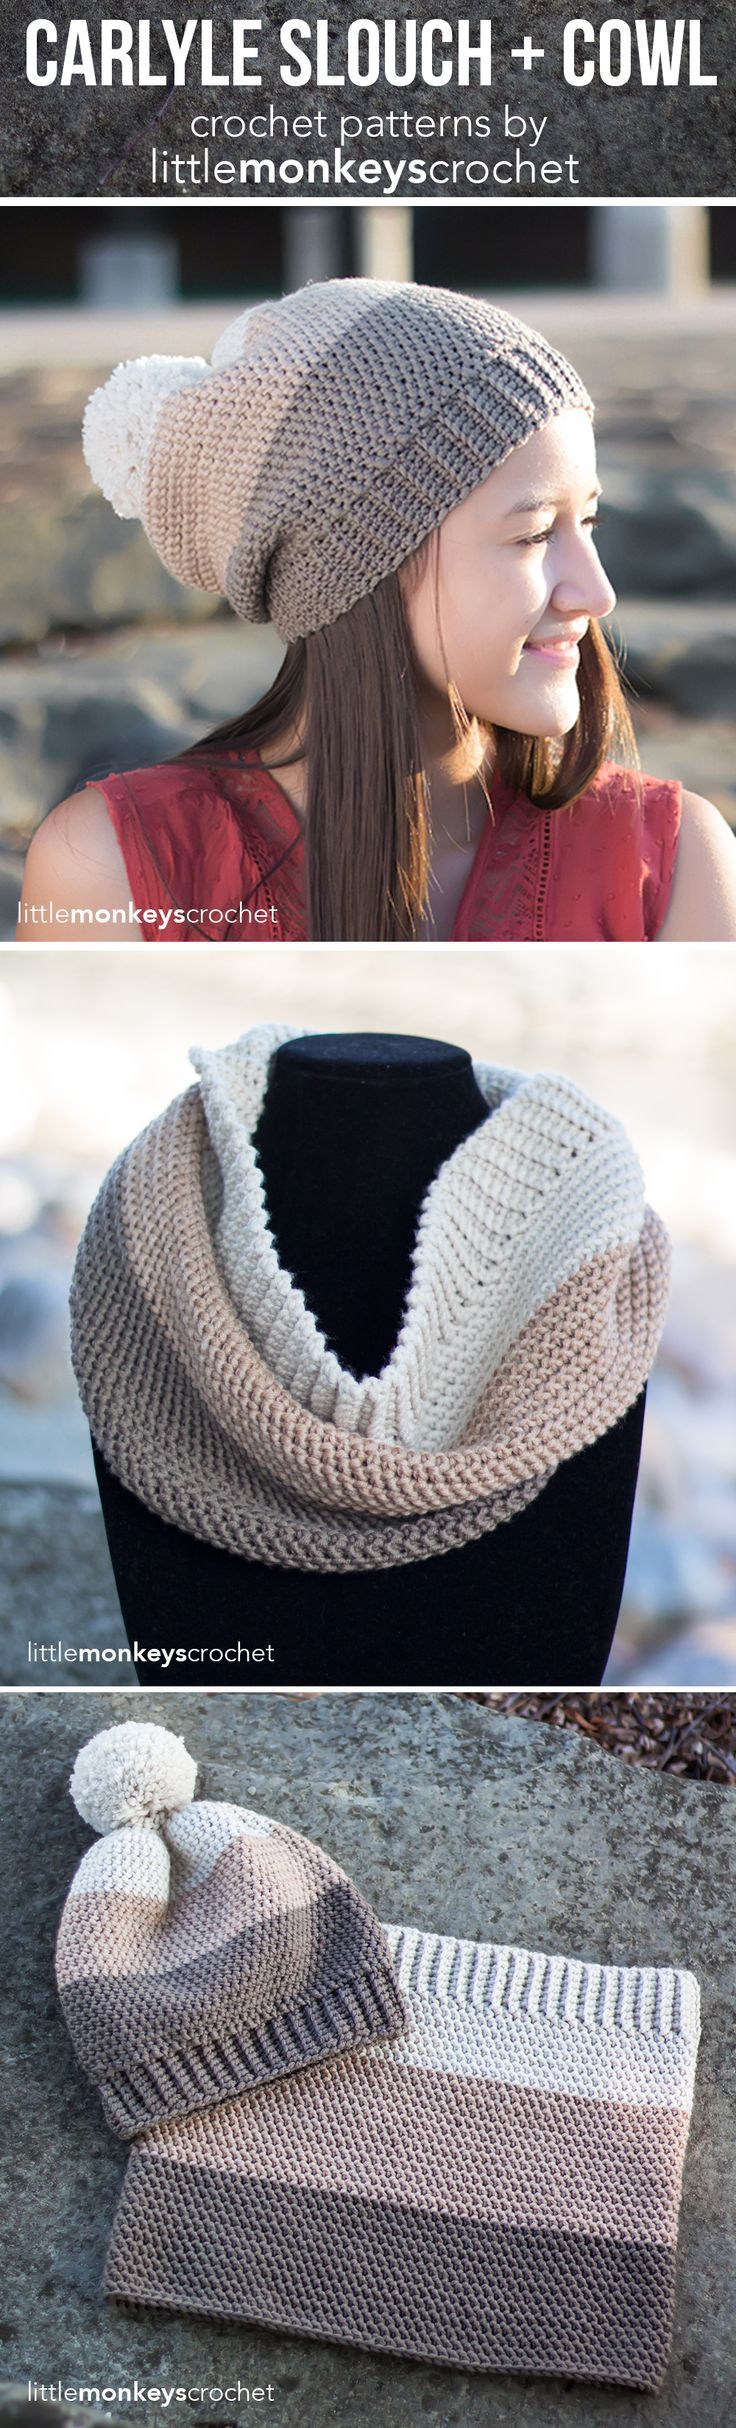 Carlyle Cowl + Slouch Hat Crochet Pattern Set | A slouchy hat with a pompom AND a crochet cowl? Yes, please!